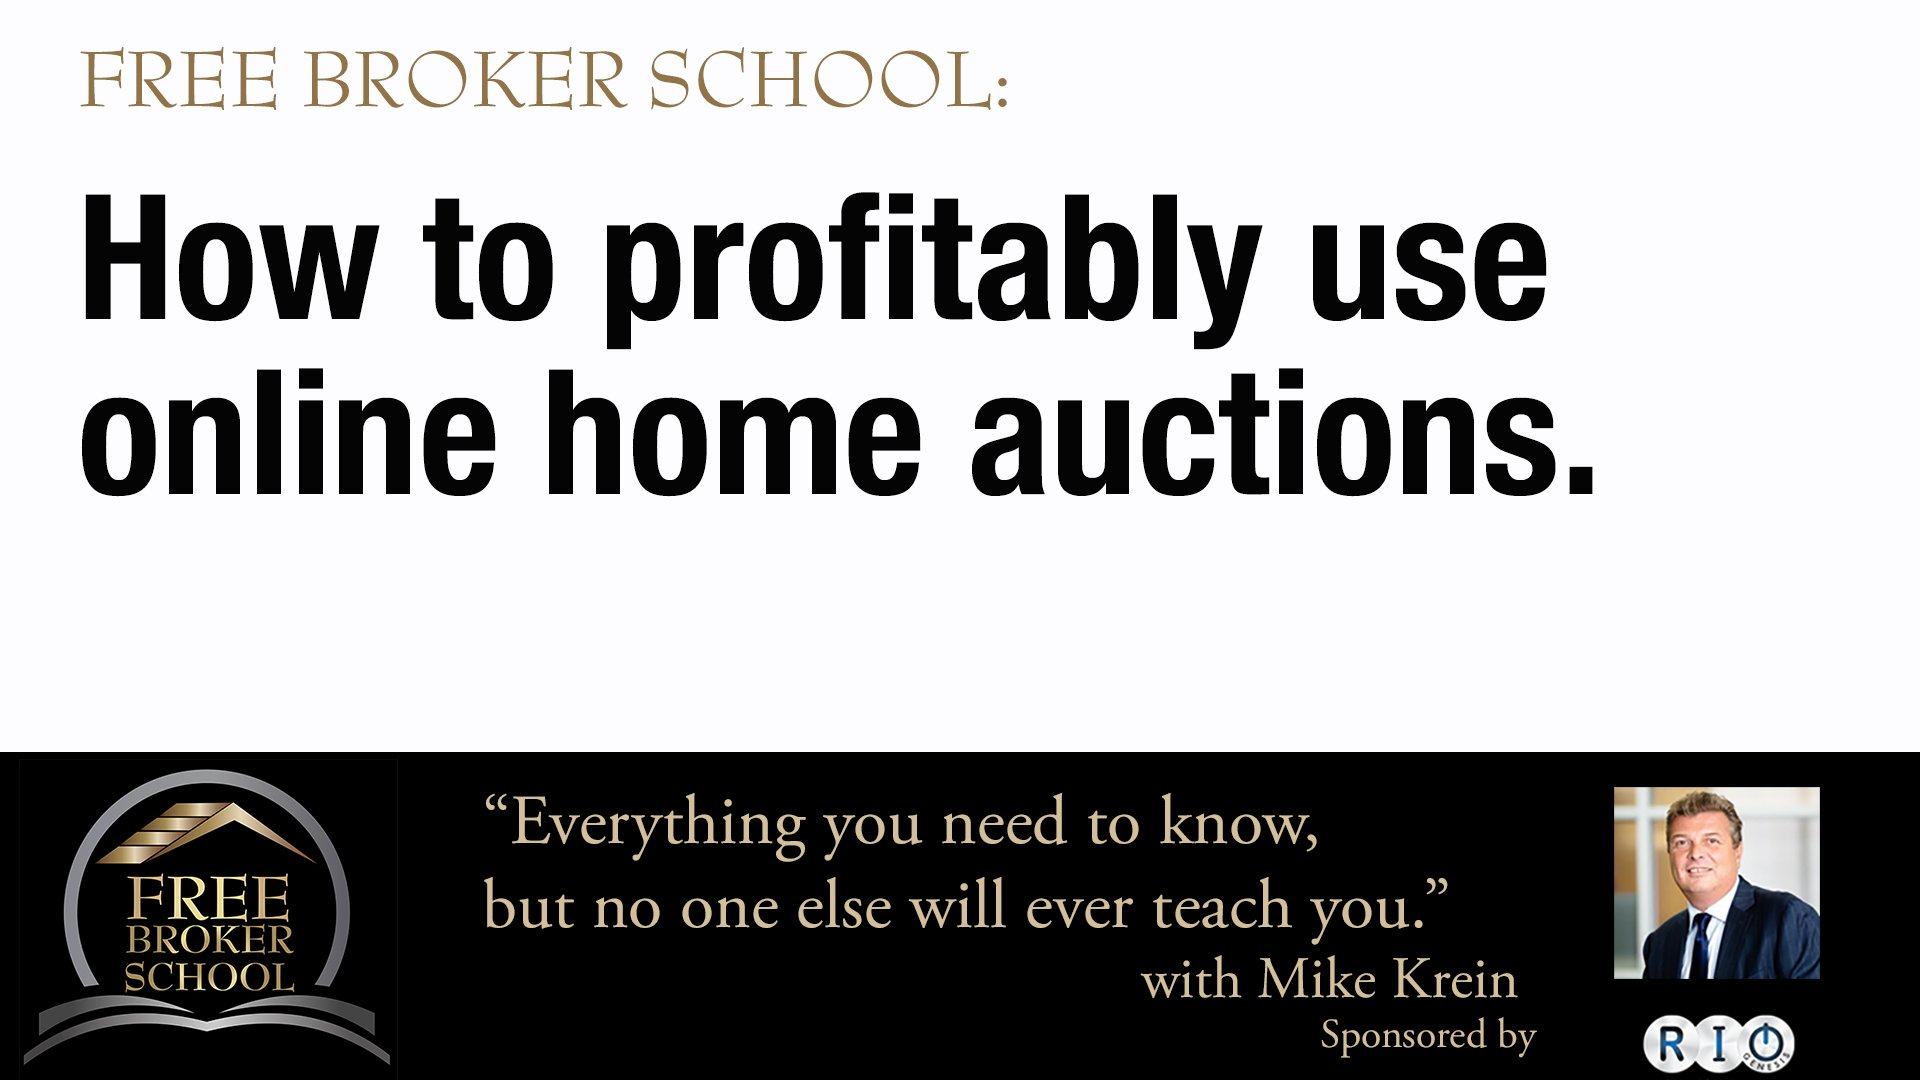 Free Broker School: How to profitably use home auctions.